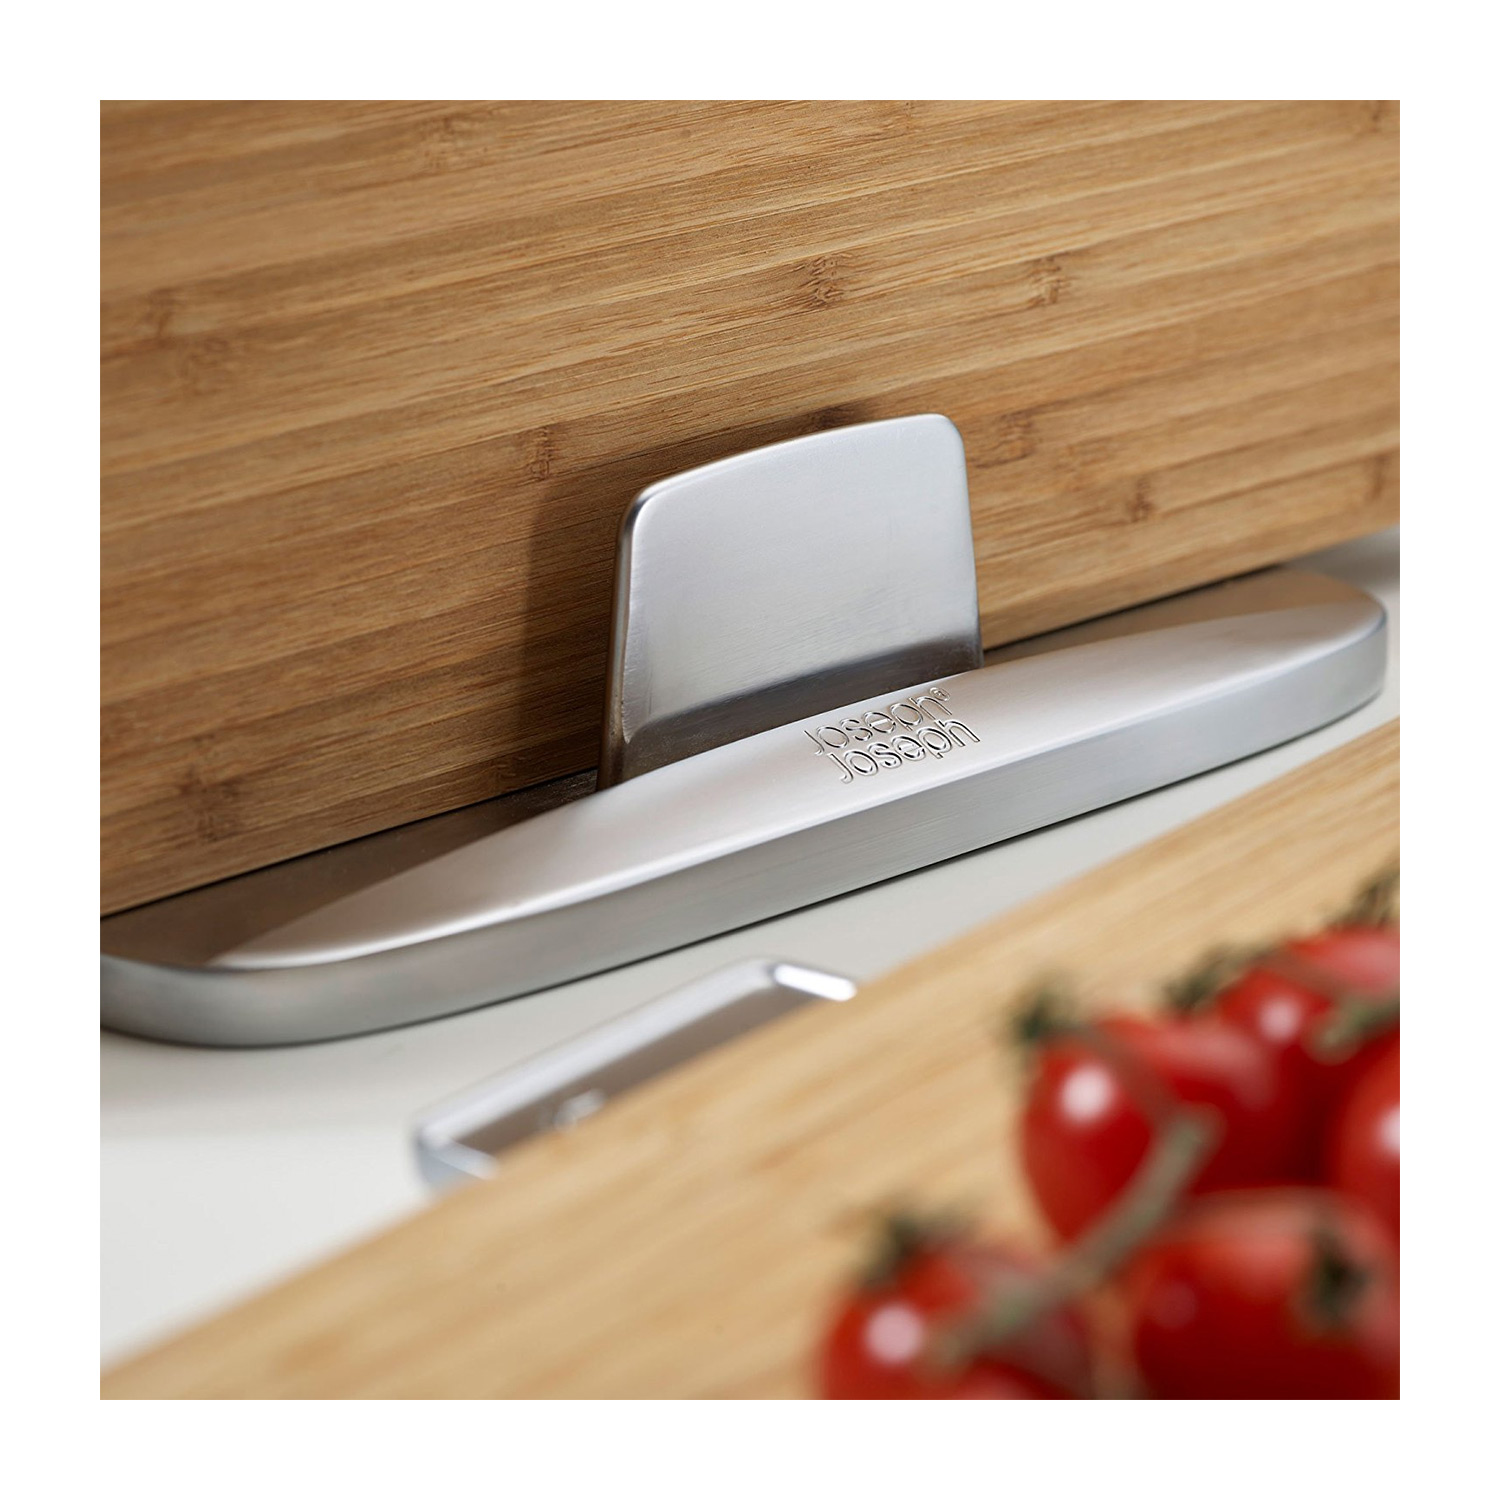 Joseph Joseph Index Bamboo Chopping Boards Freenet Electrical